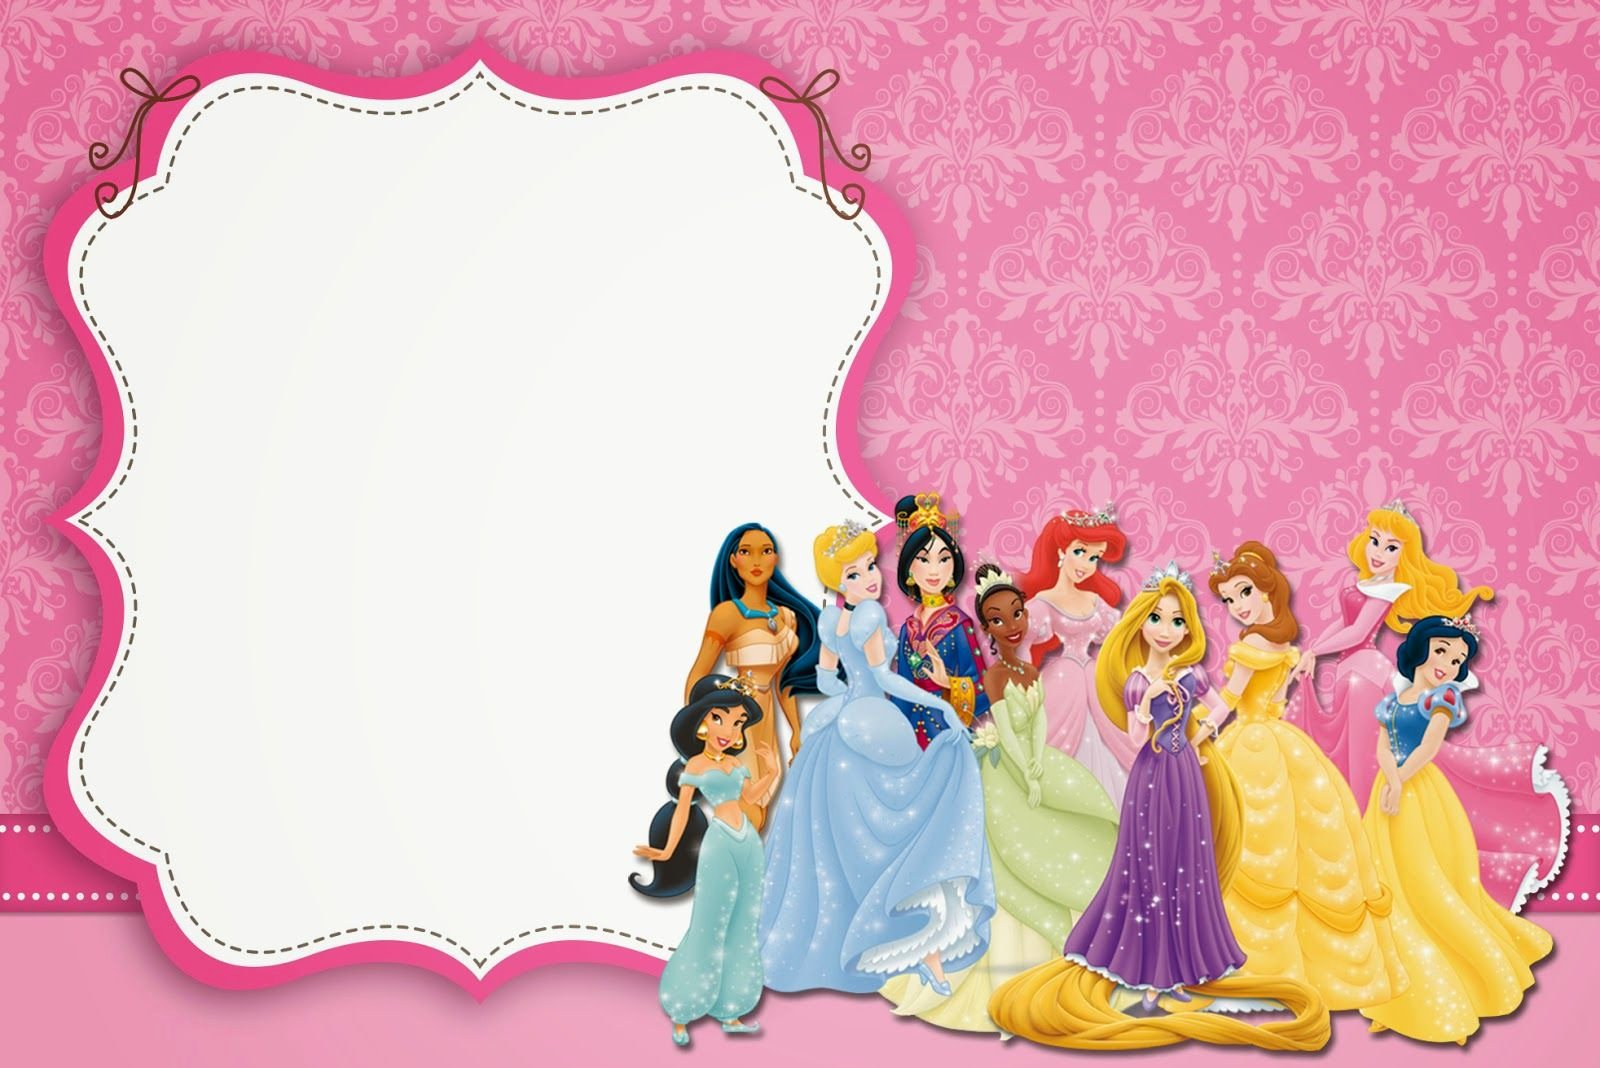 Disney Princess Invitation Template Fresh Blank Disney Princess Invite Google Search Jaila Bday In 2019